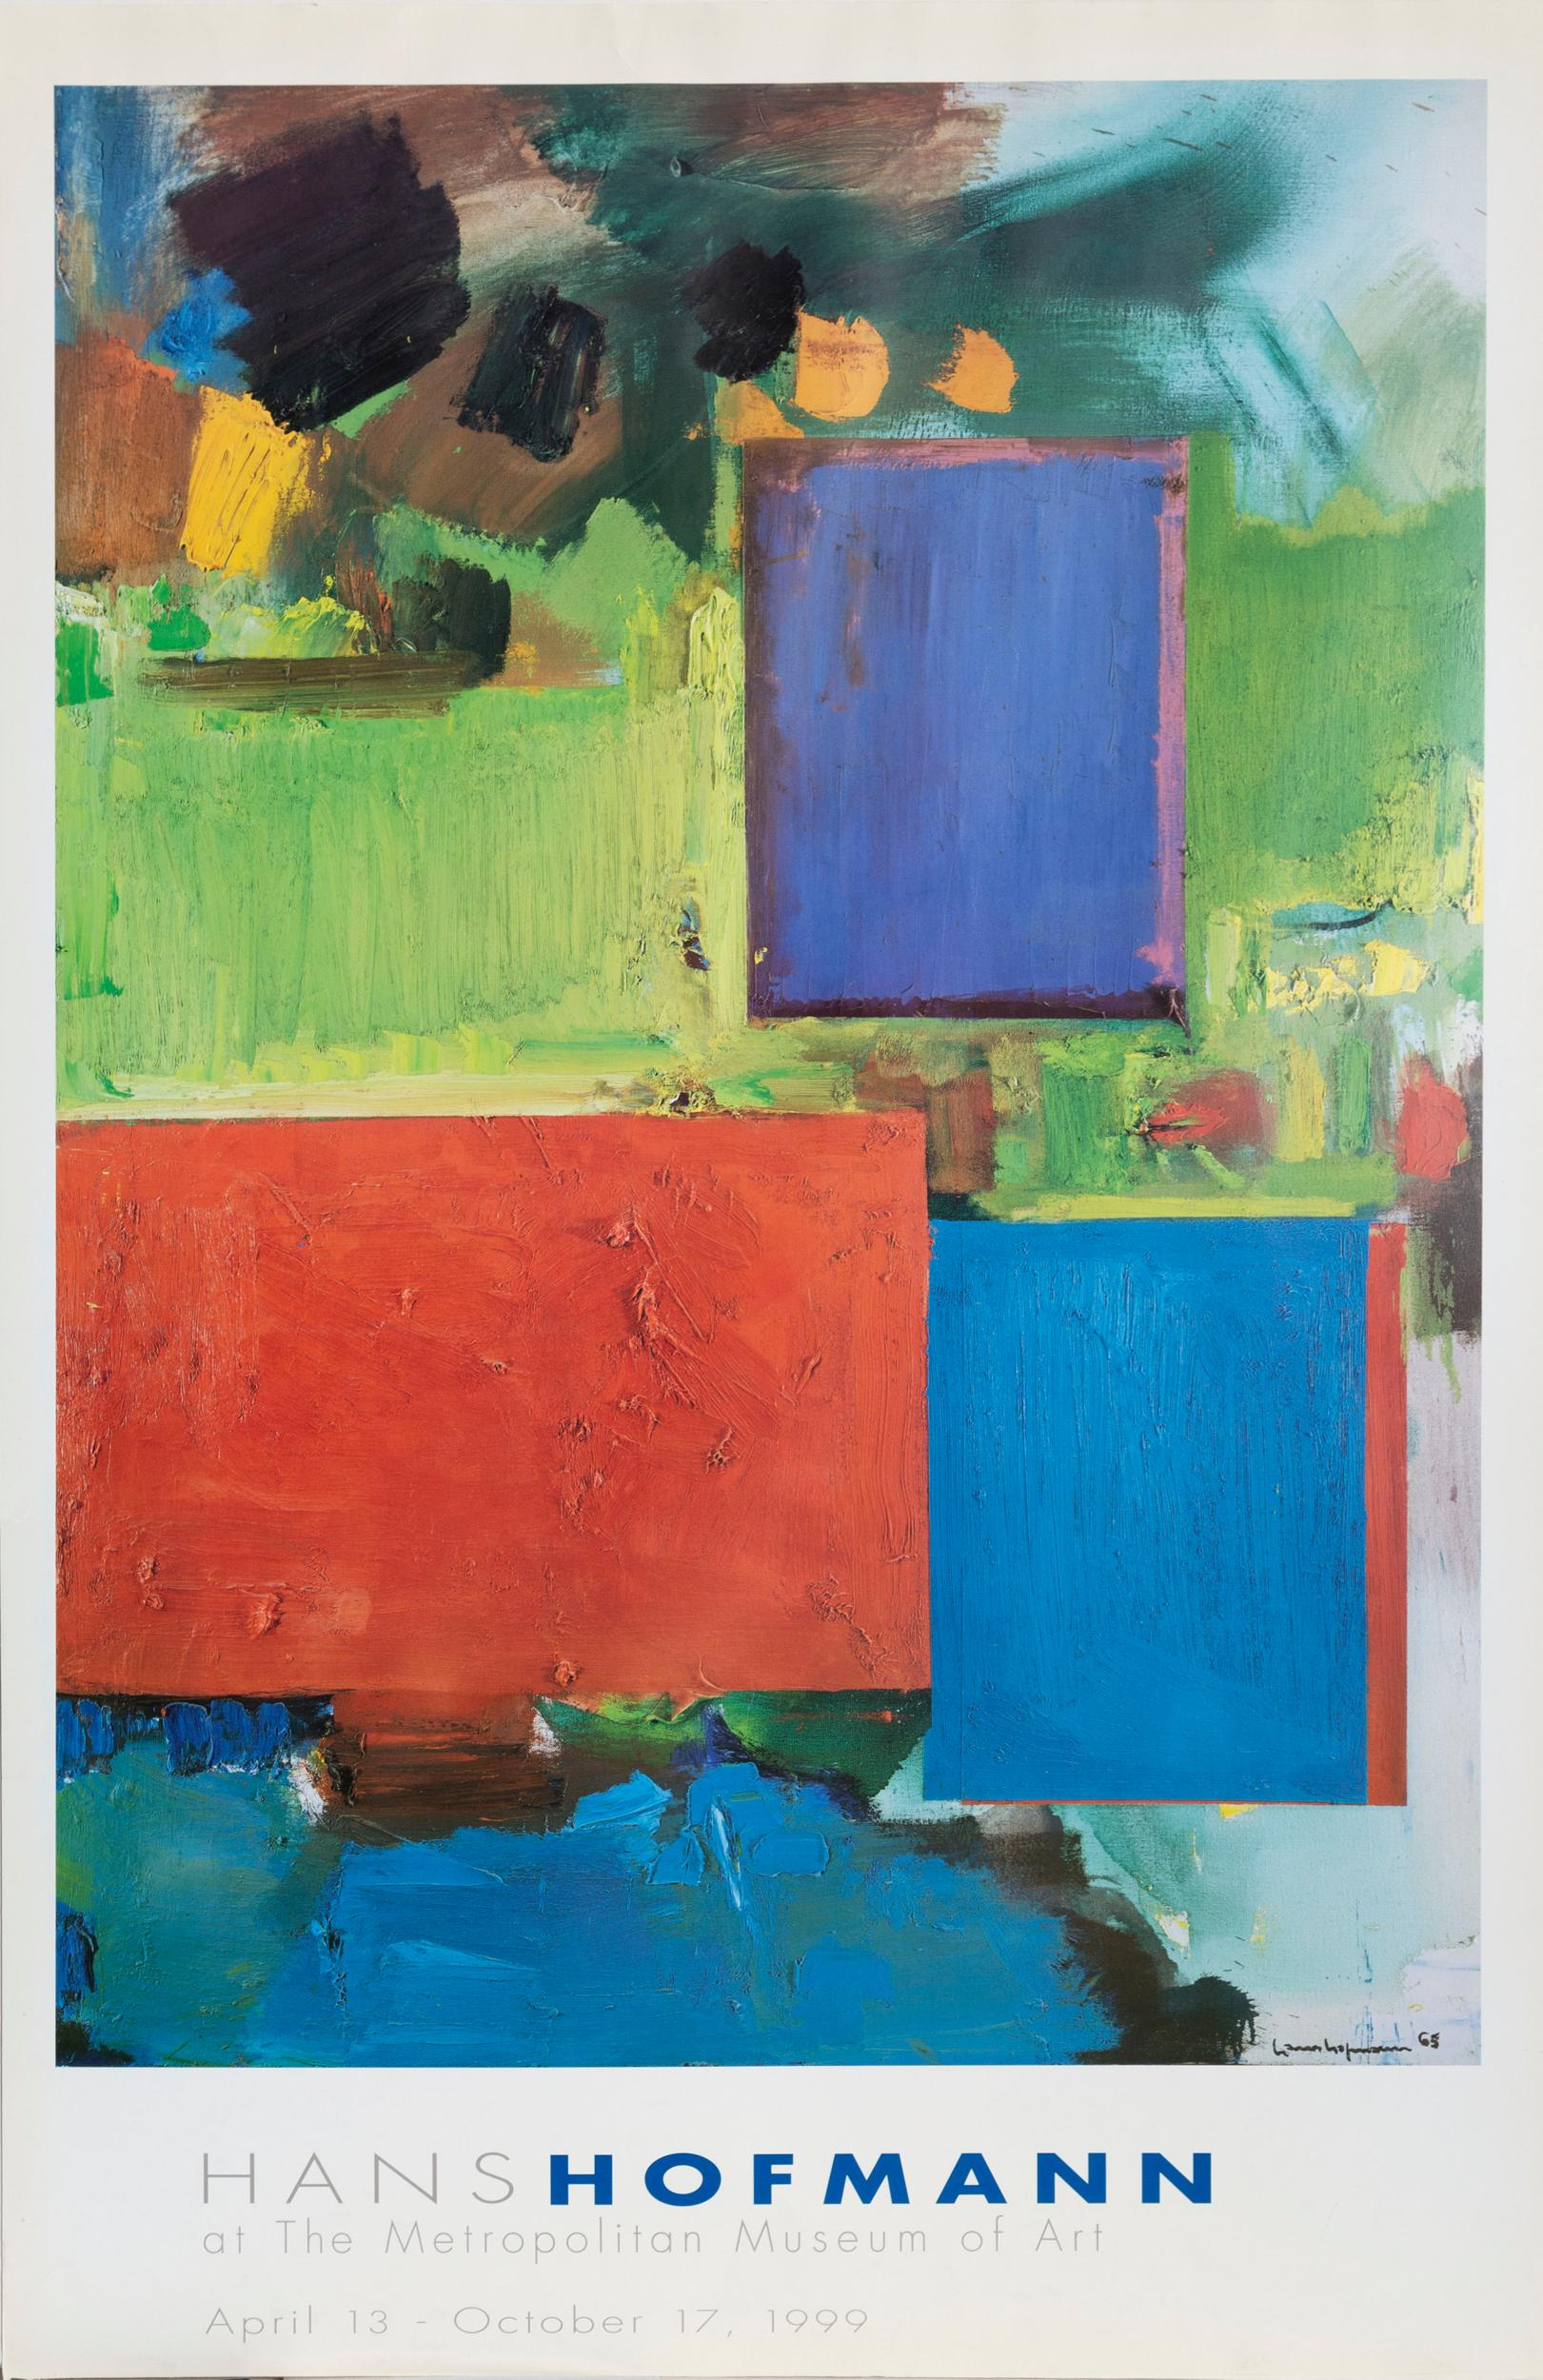 Hans Hofmann, Rhapsody - The Metropolitan Museum of Art, Poster